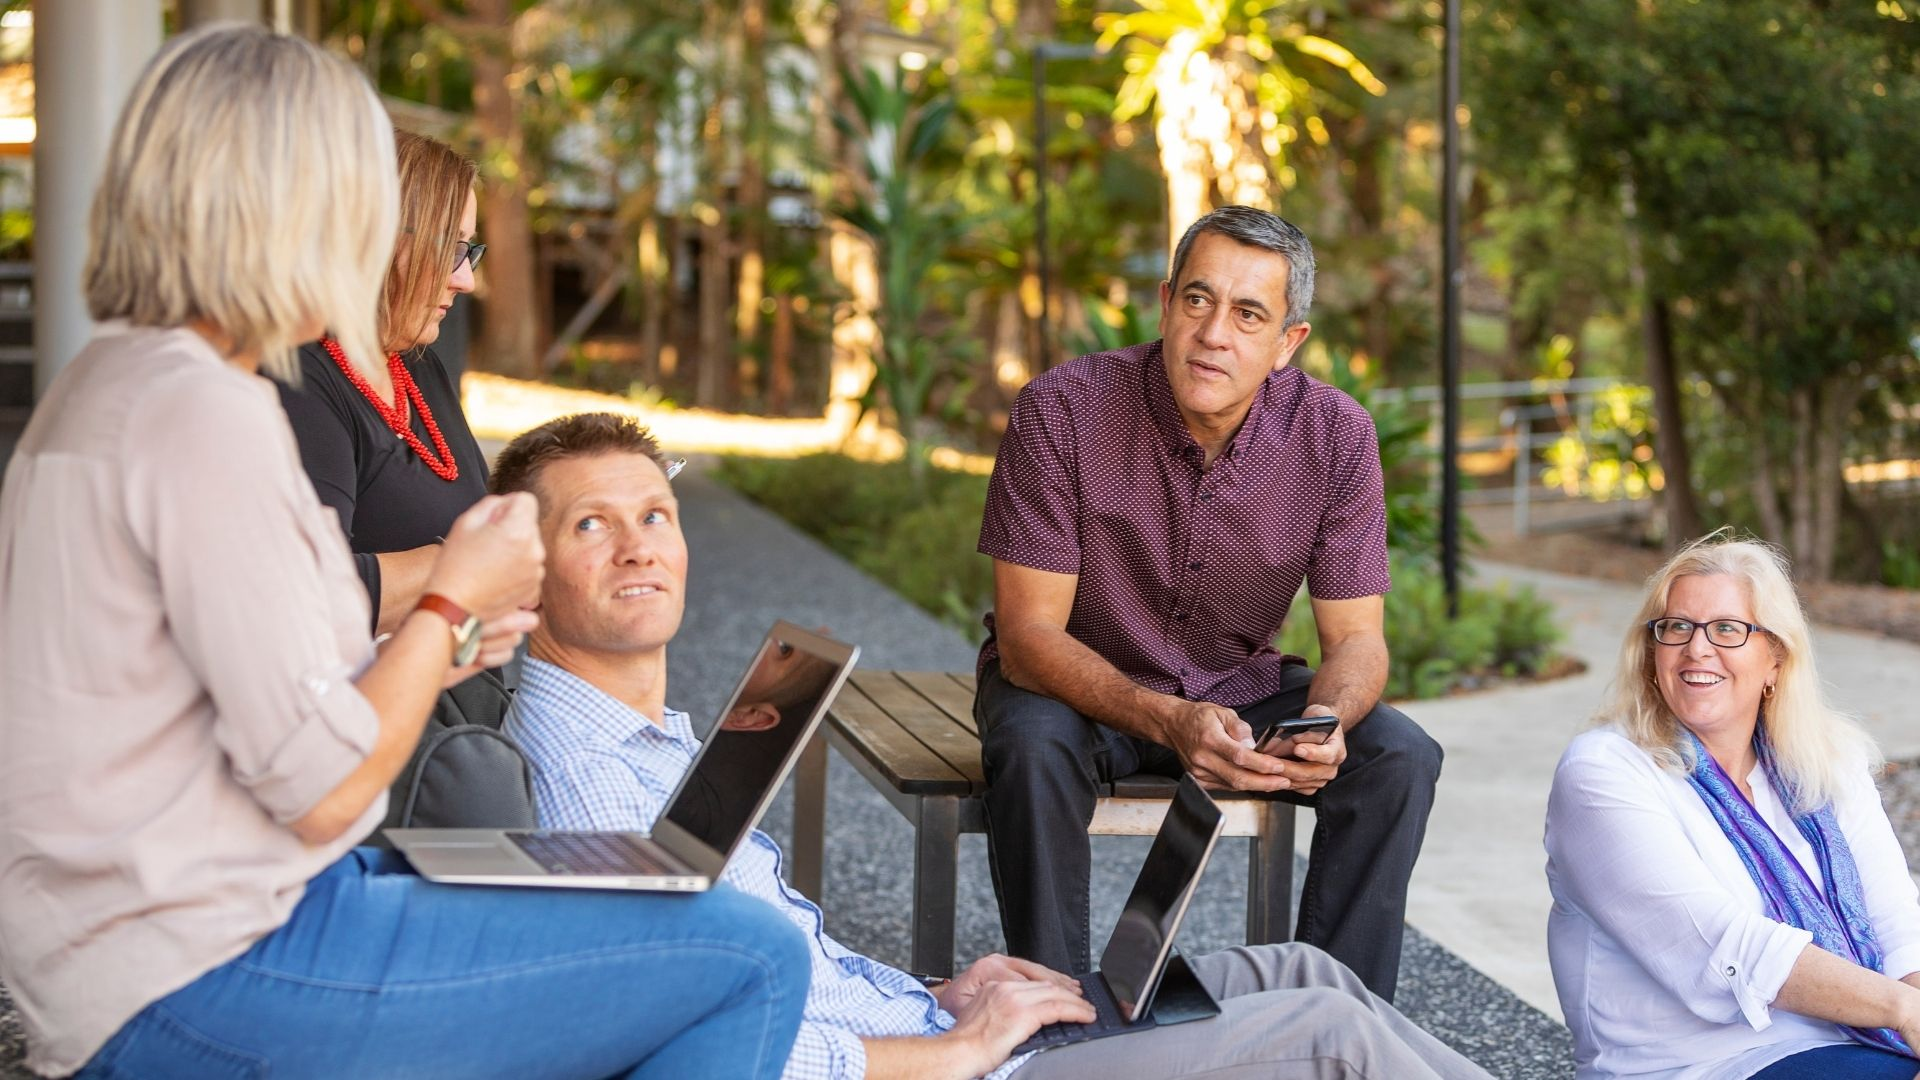 Group in outside business meeting